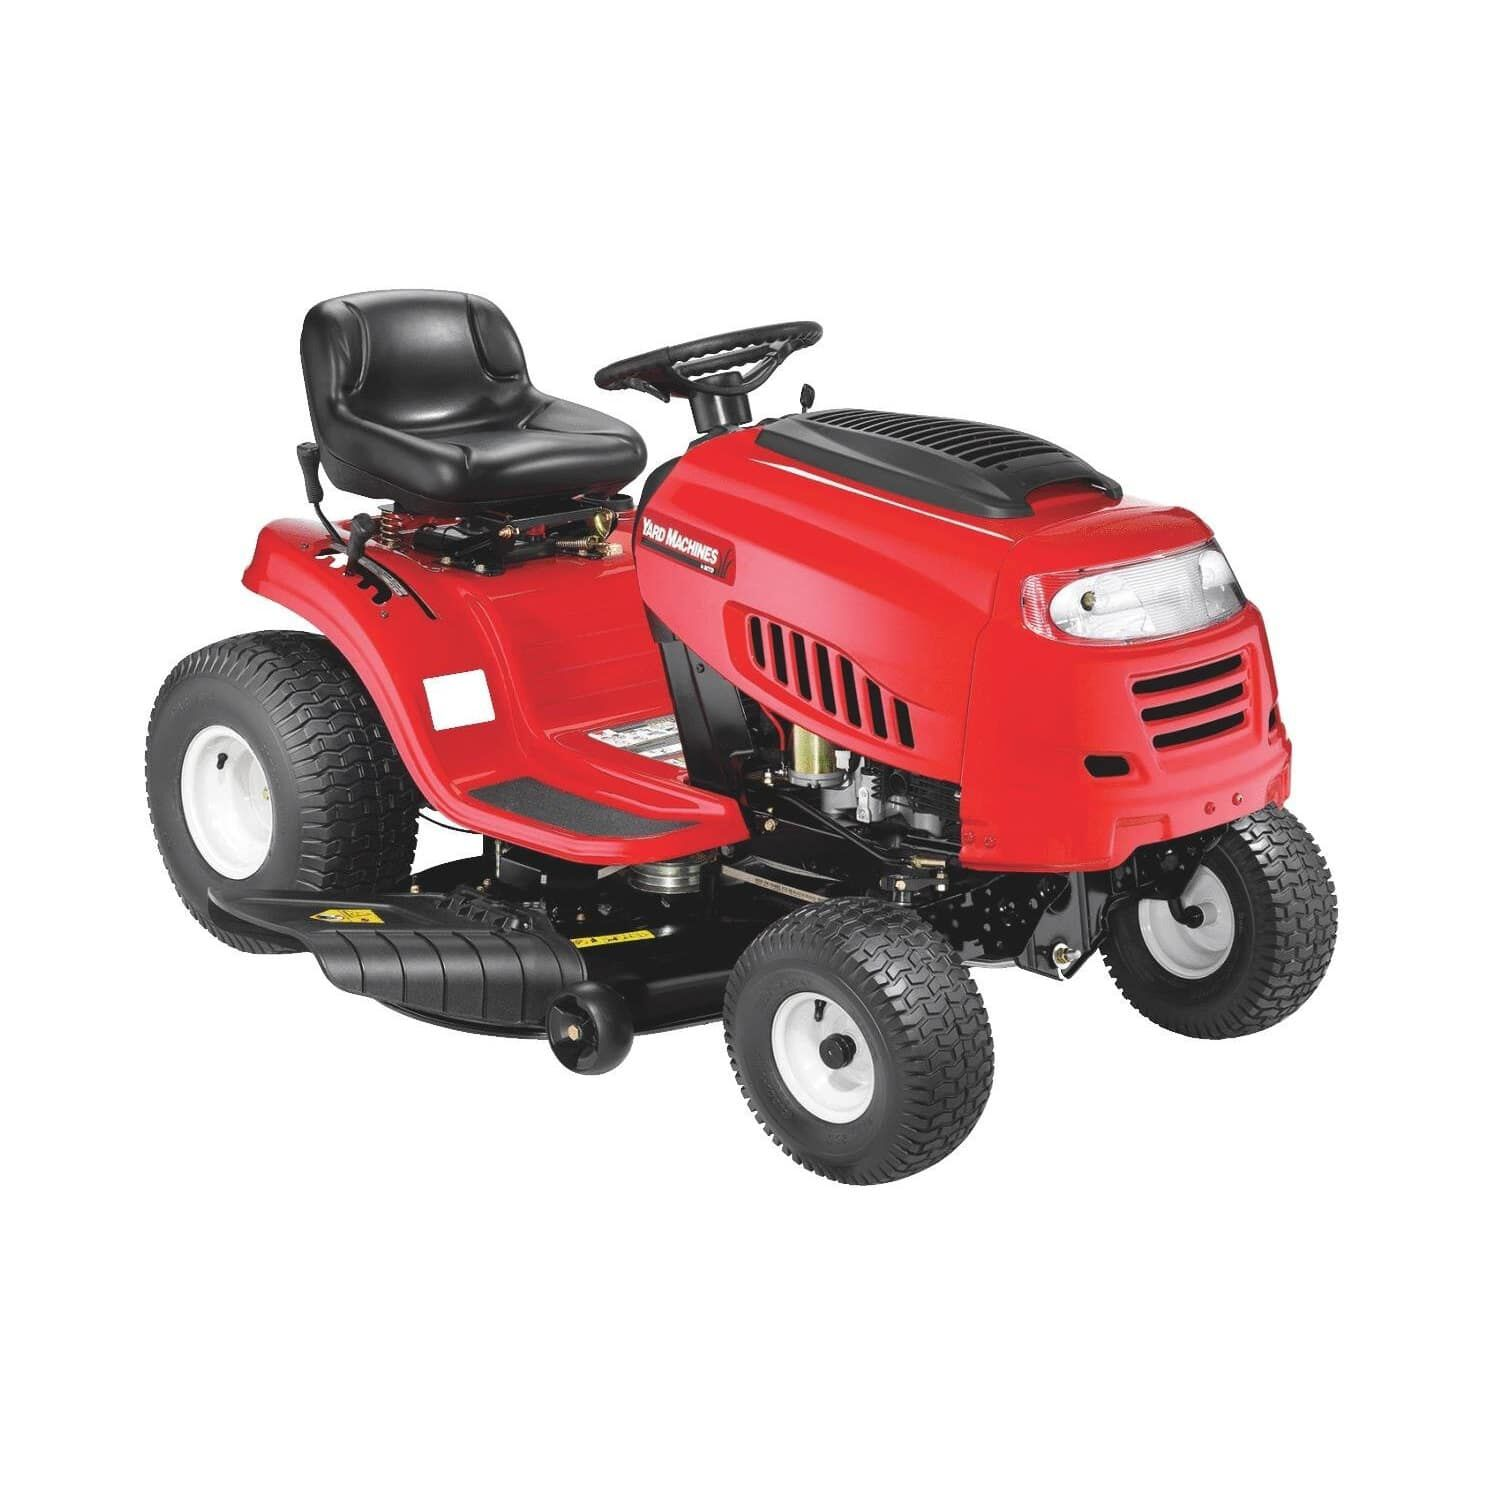 yard machines outdoor power 42 420cc riding lawn mower with 7 speed manual transmission [ 1000 x 1000 Pixel ]